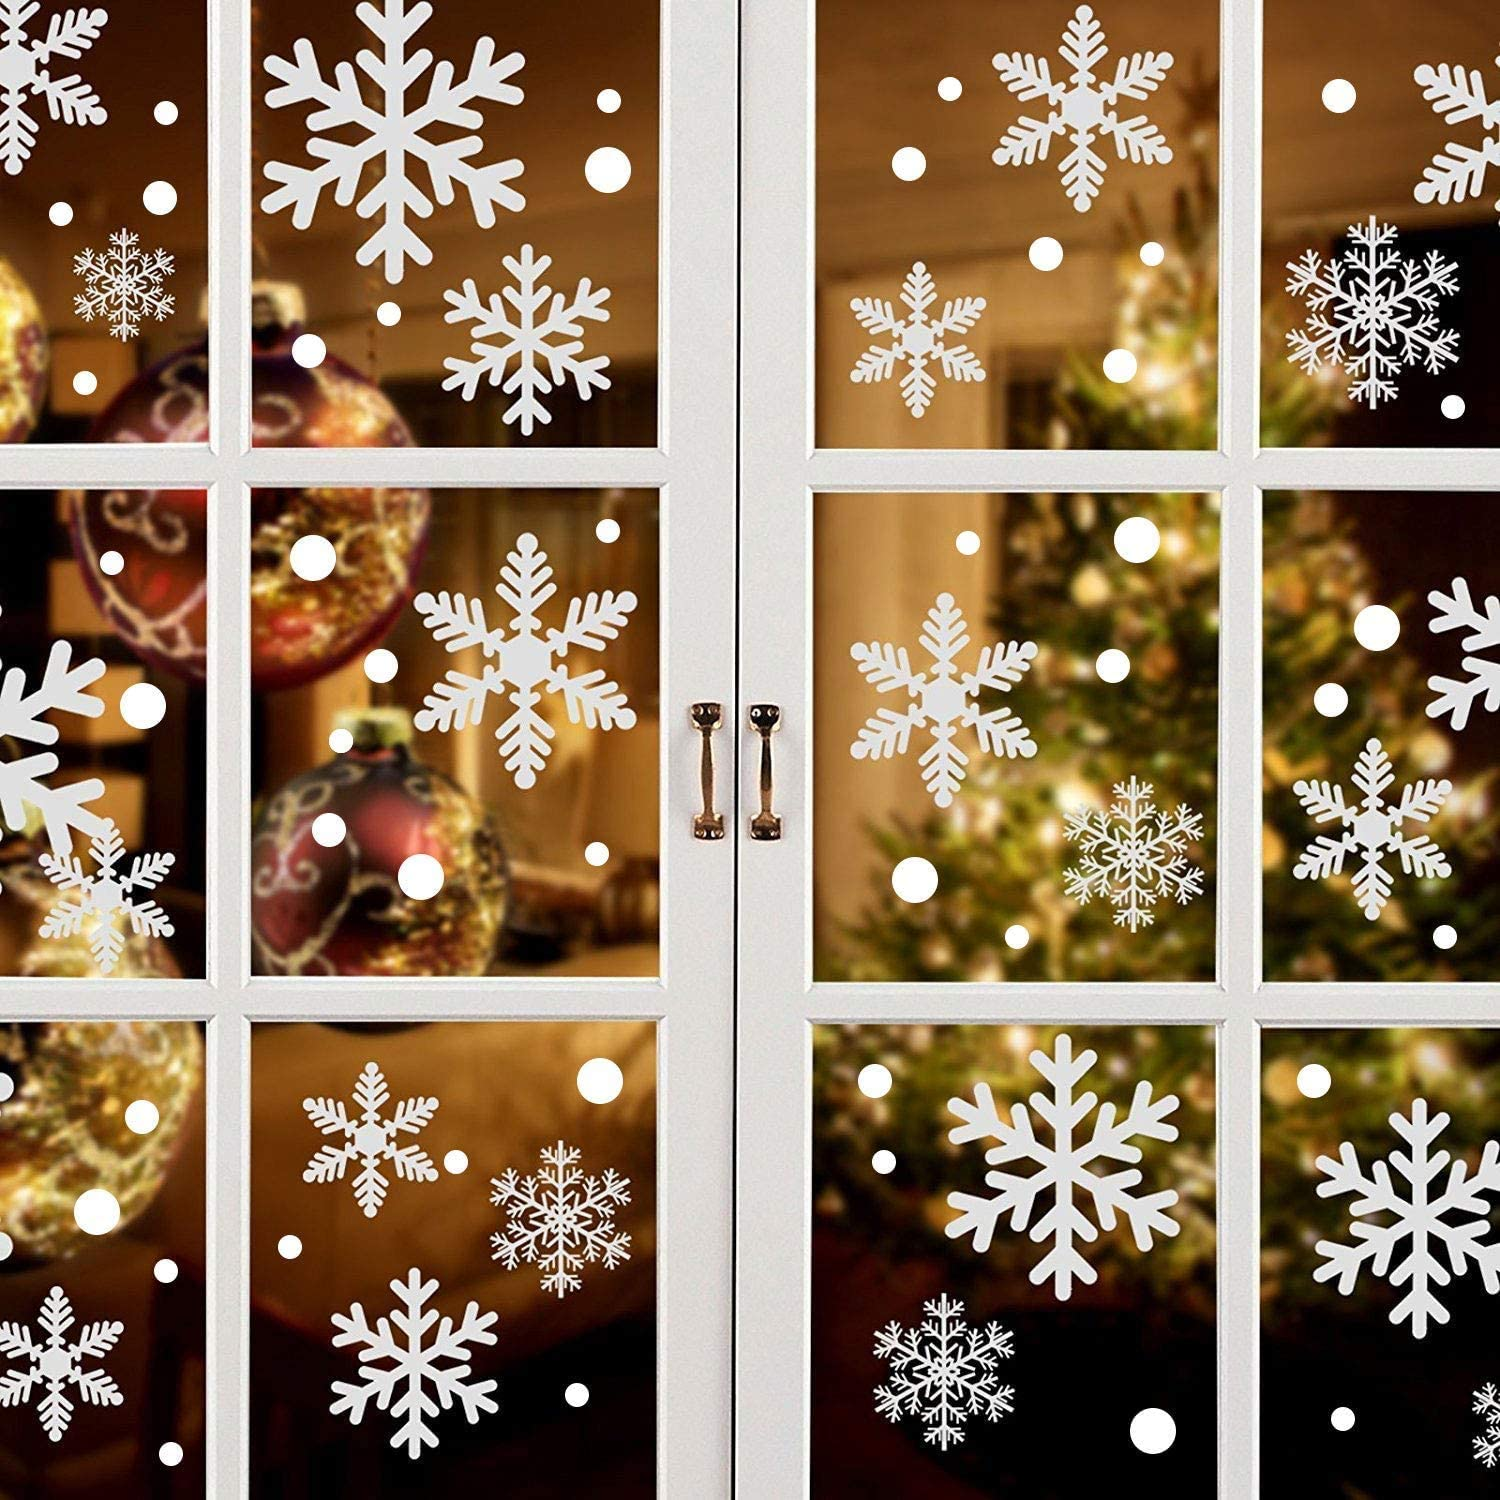 Lansian 156PCS+ White Snowflakes Window Clings Decal Stickers Christmas New Year Winter Wonderland Decorations Ornaments Frozen Party Supplies(6 Sheets)